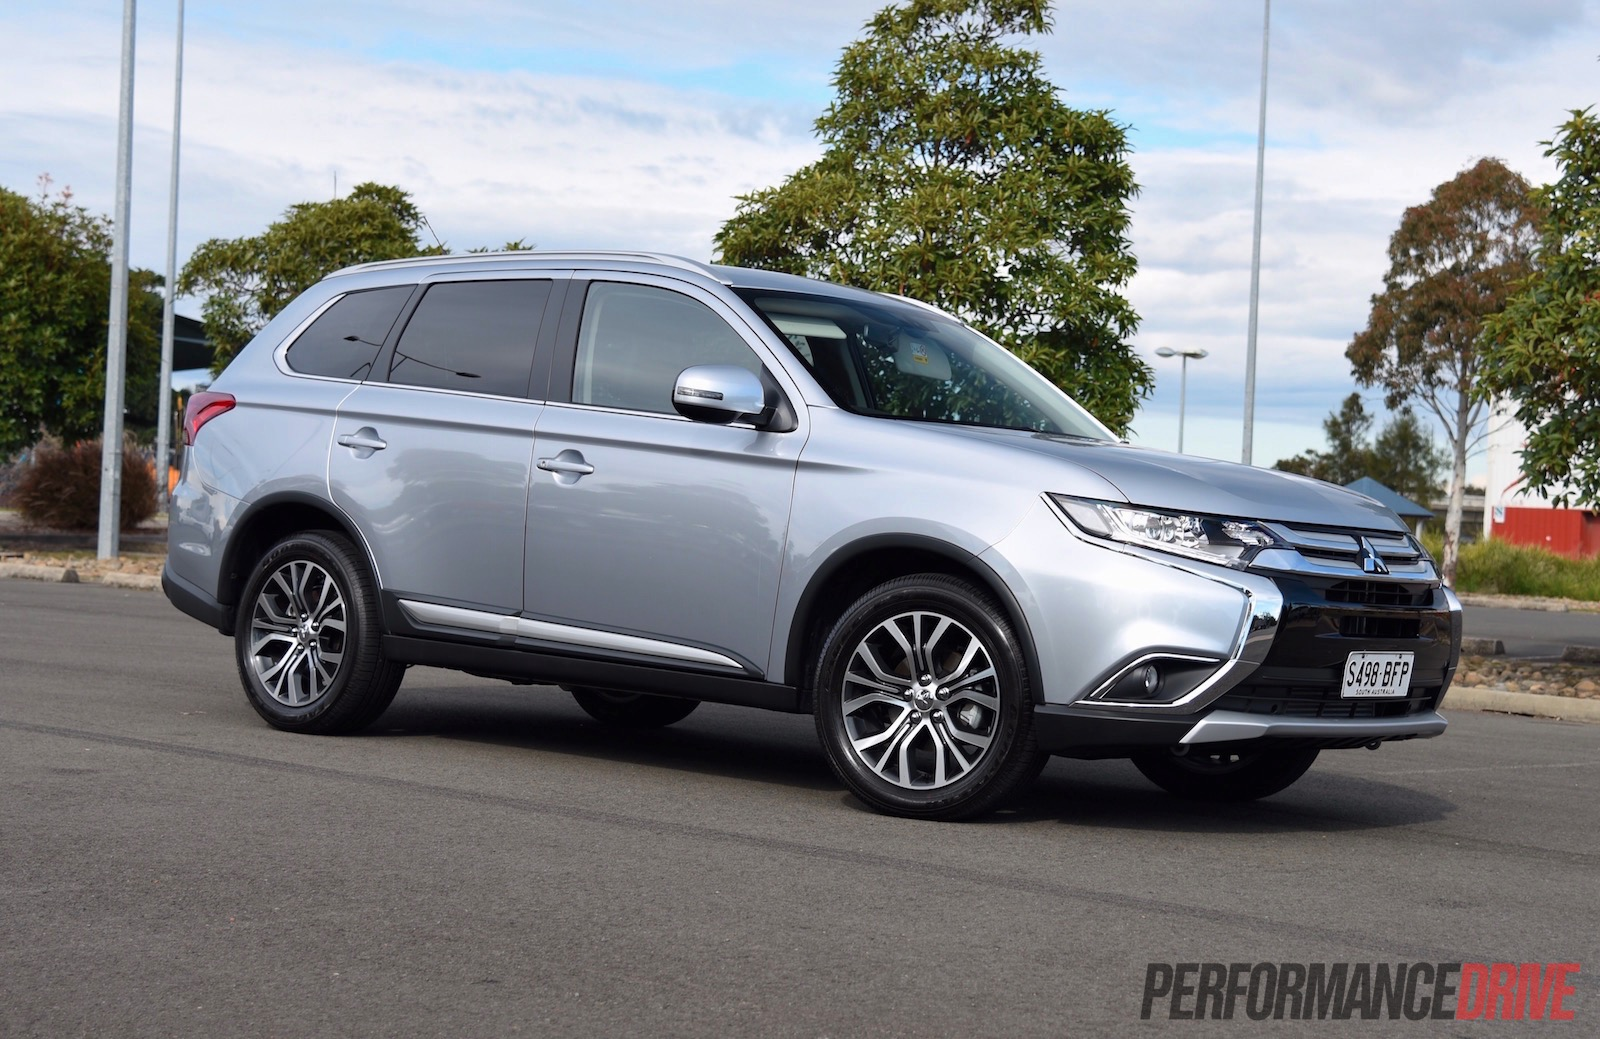 Should you buy a 2016 Mitsubishi Outlander diesel? (video